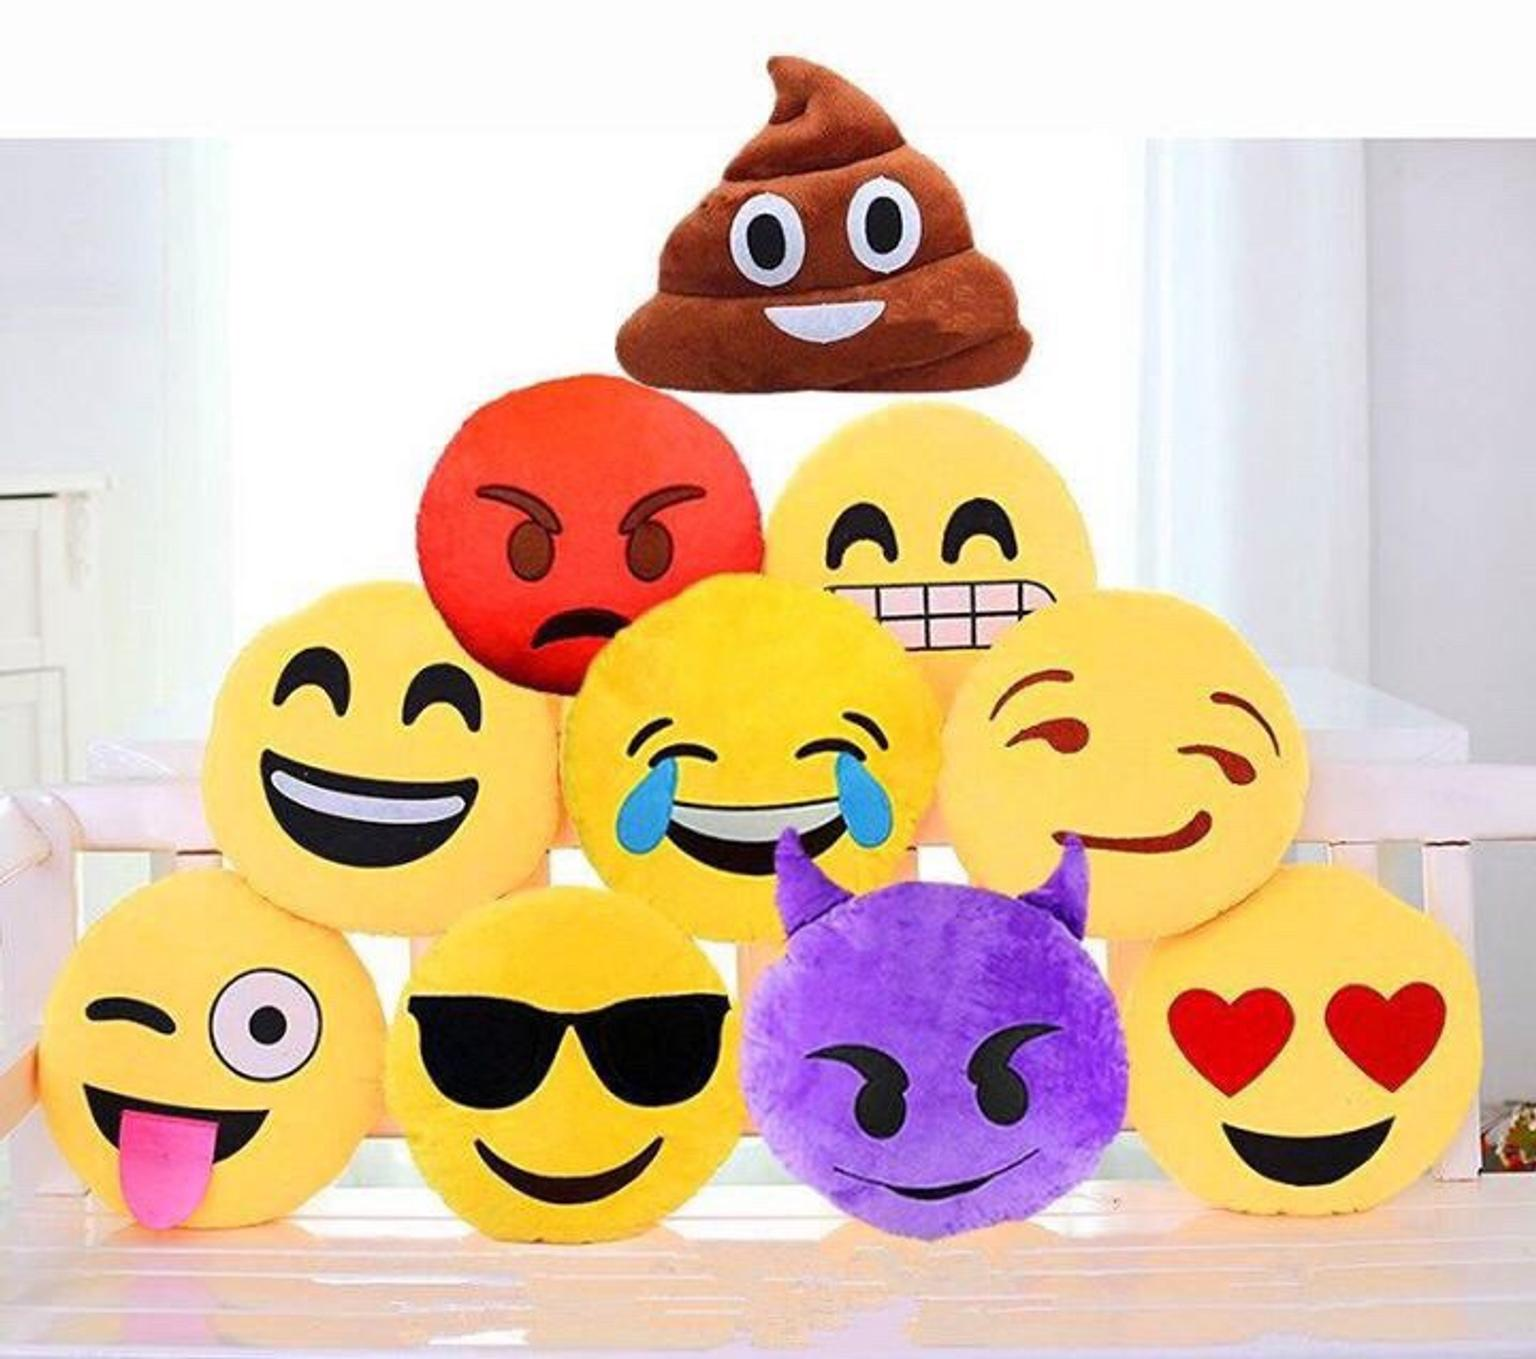 Cuscini Faccine Whatsapp.Cuscino Faccina Emotion Emoji Cuore Whatsapp In 24023 Clusone For